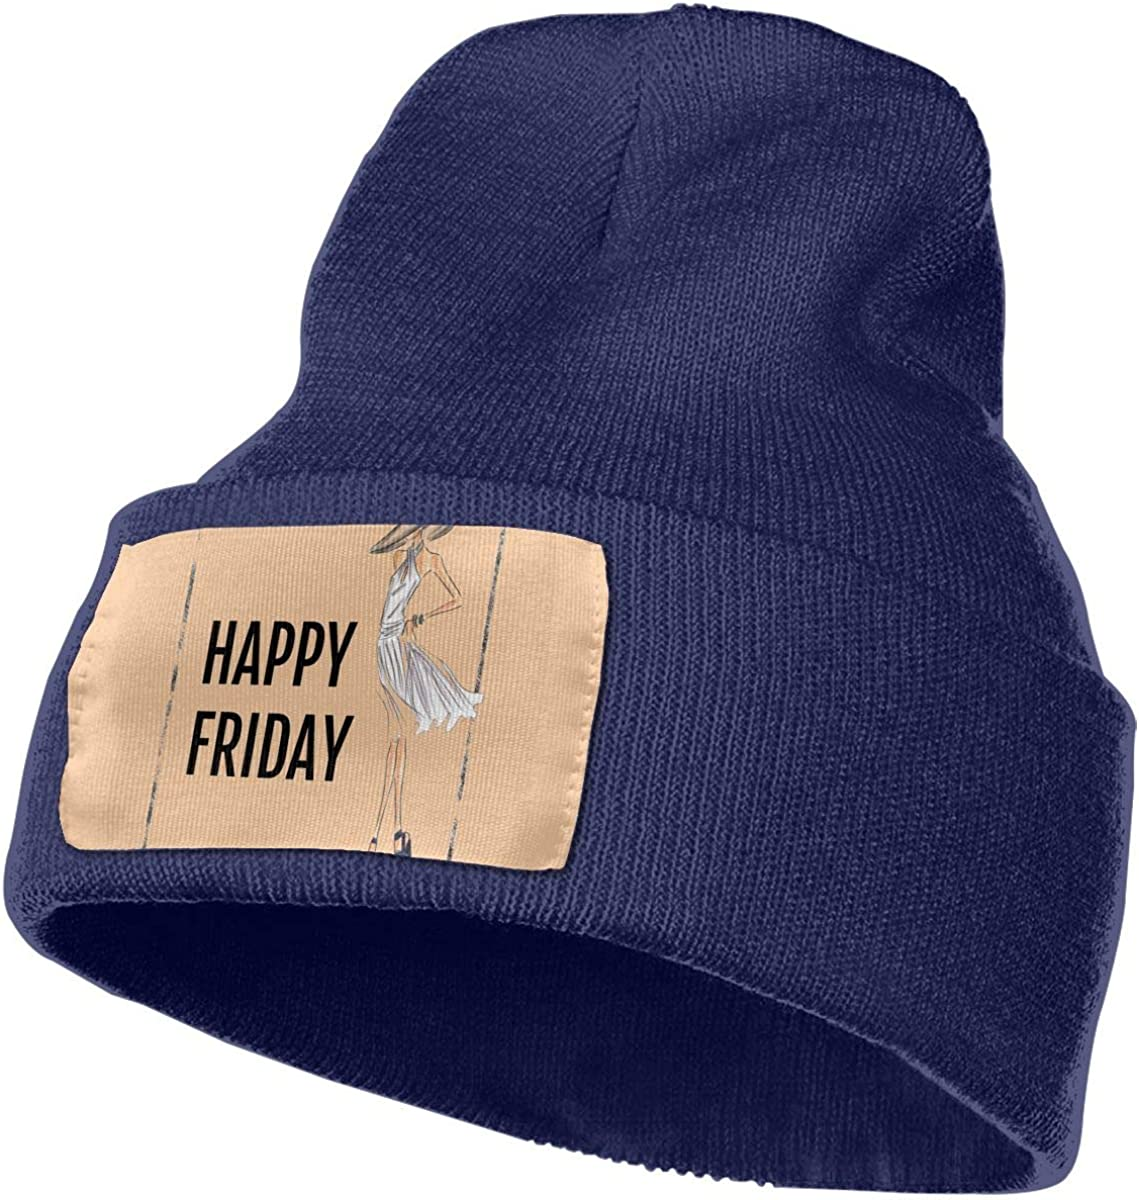 Happy Friday Time Hat for Men and Women Winter Warm Hats Knit Slouchy Thick Skull Cap